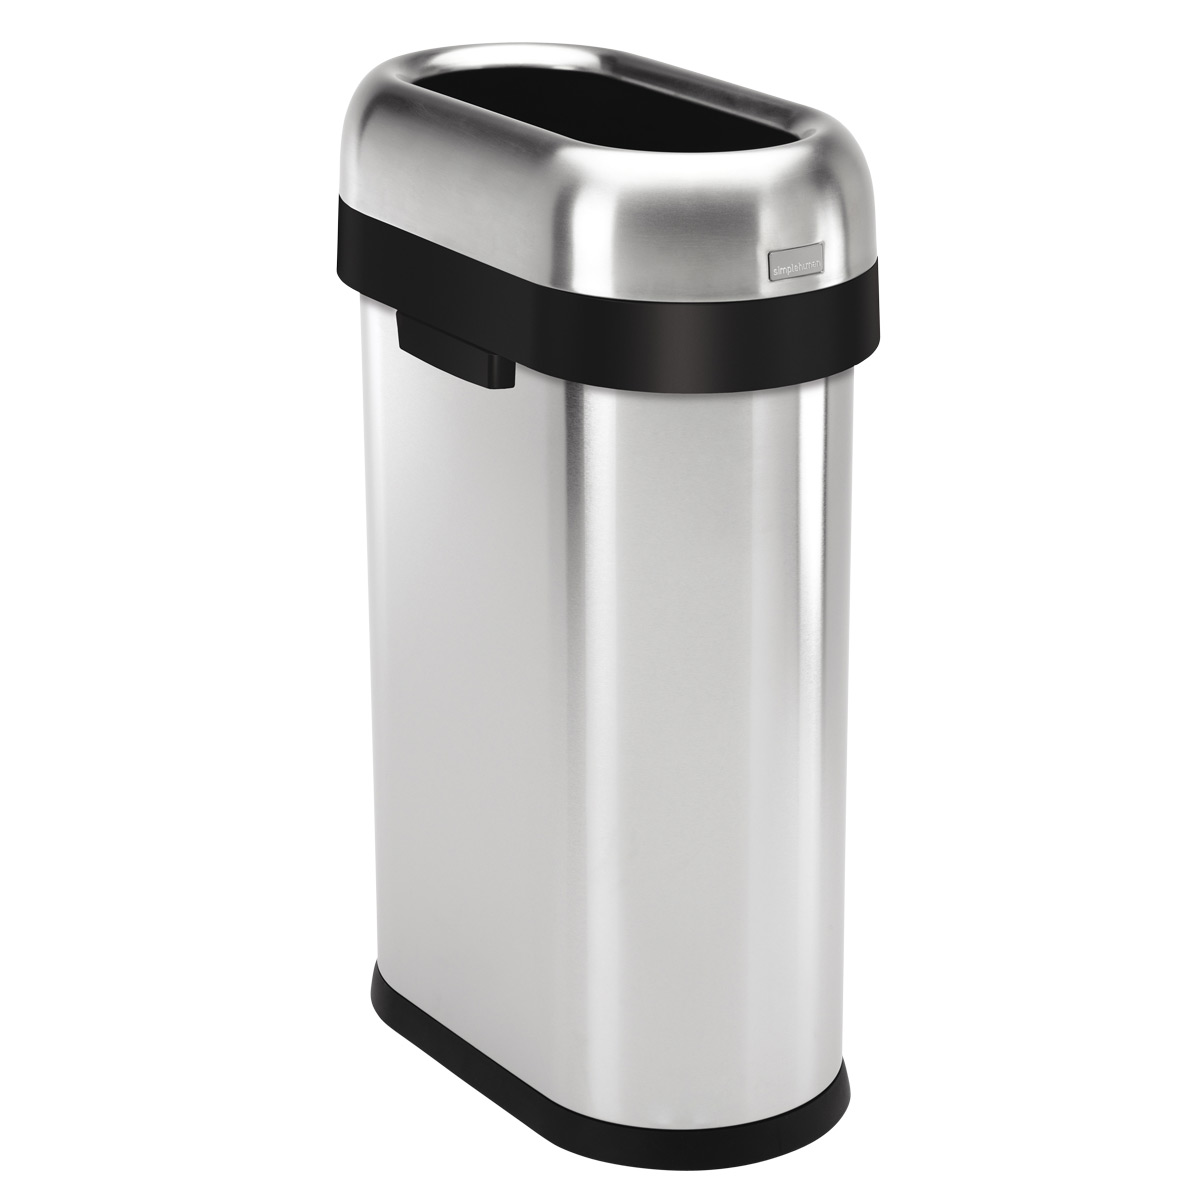 simplehuman Stainless Steel 13 gal. Slim Open Trash Can